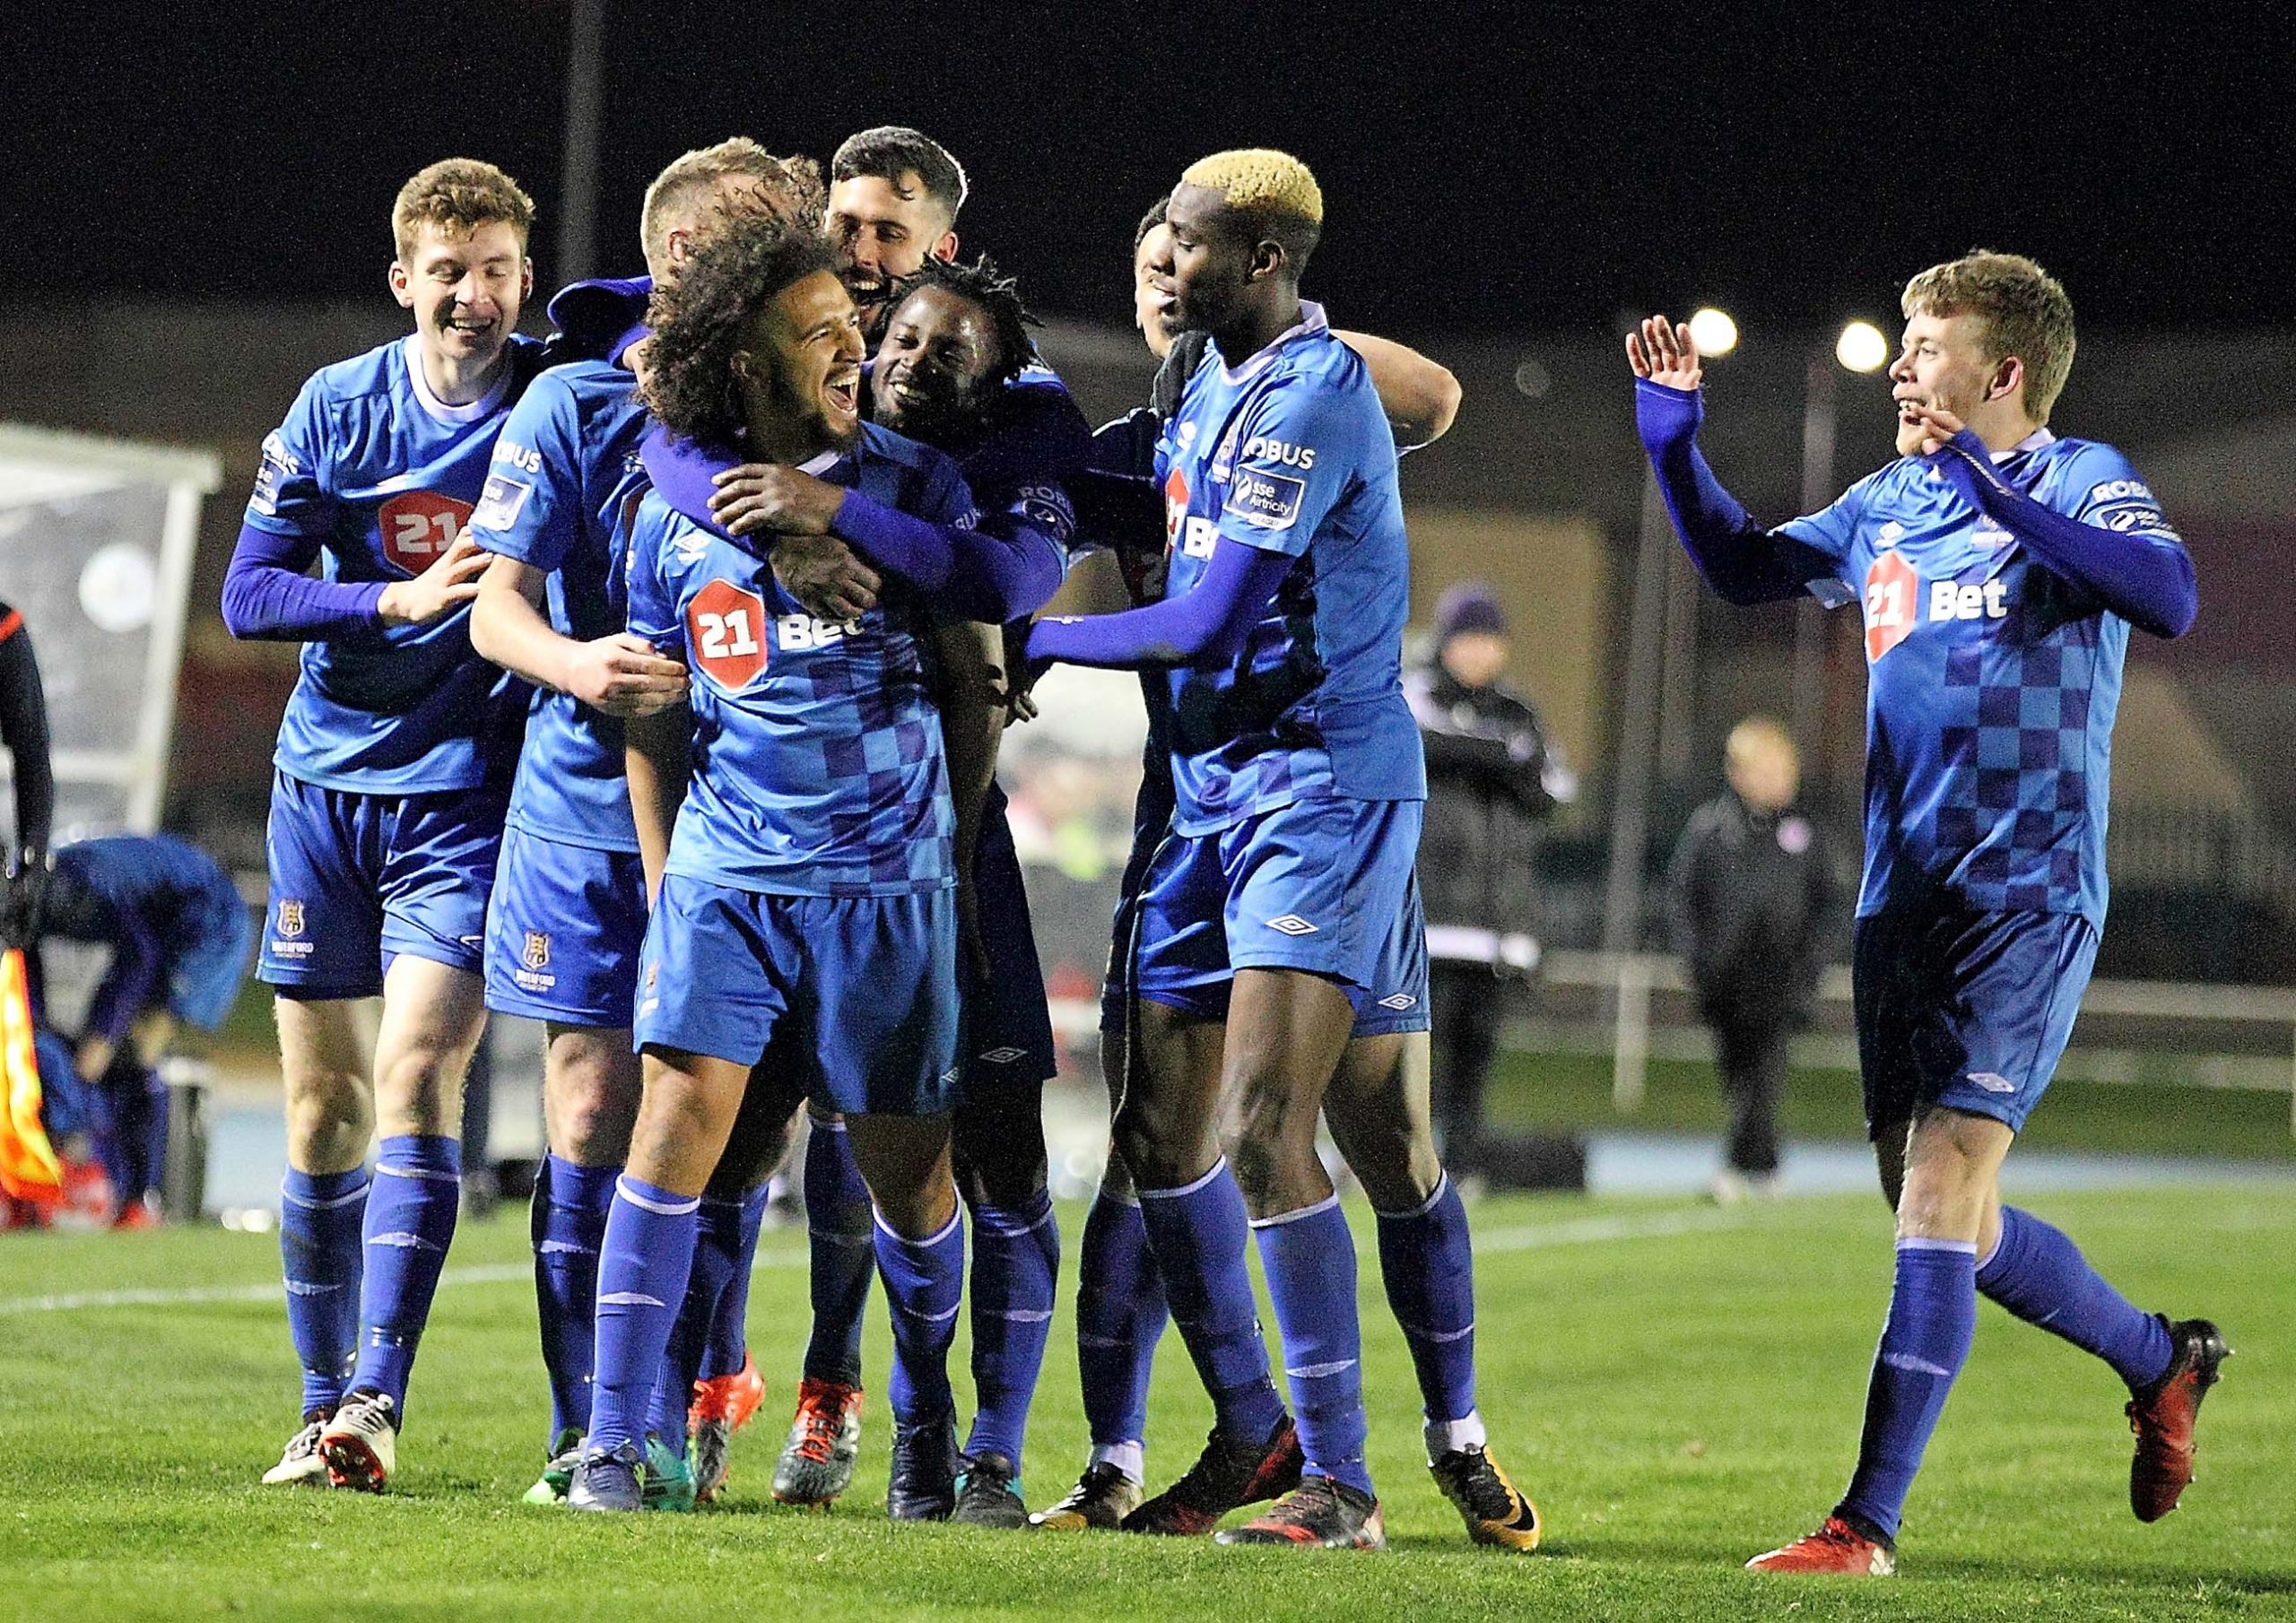 Blues welcome Shamrock Rovers for massive game in the Airtricity League Prermier Division this evening